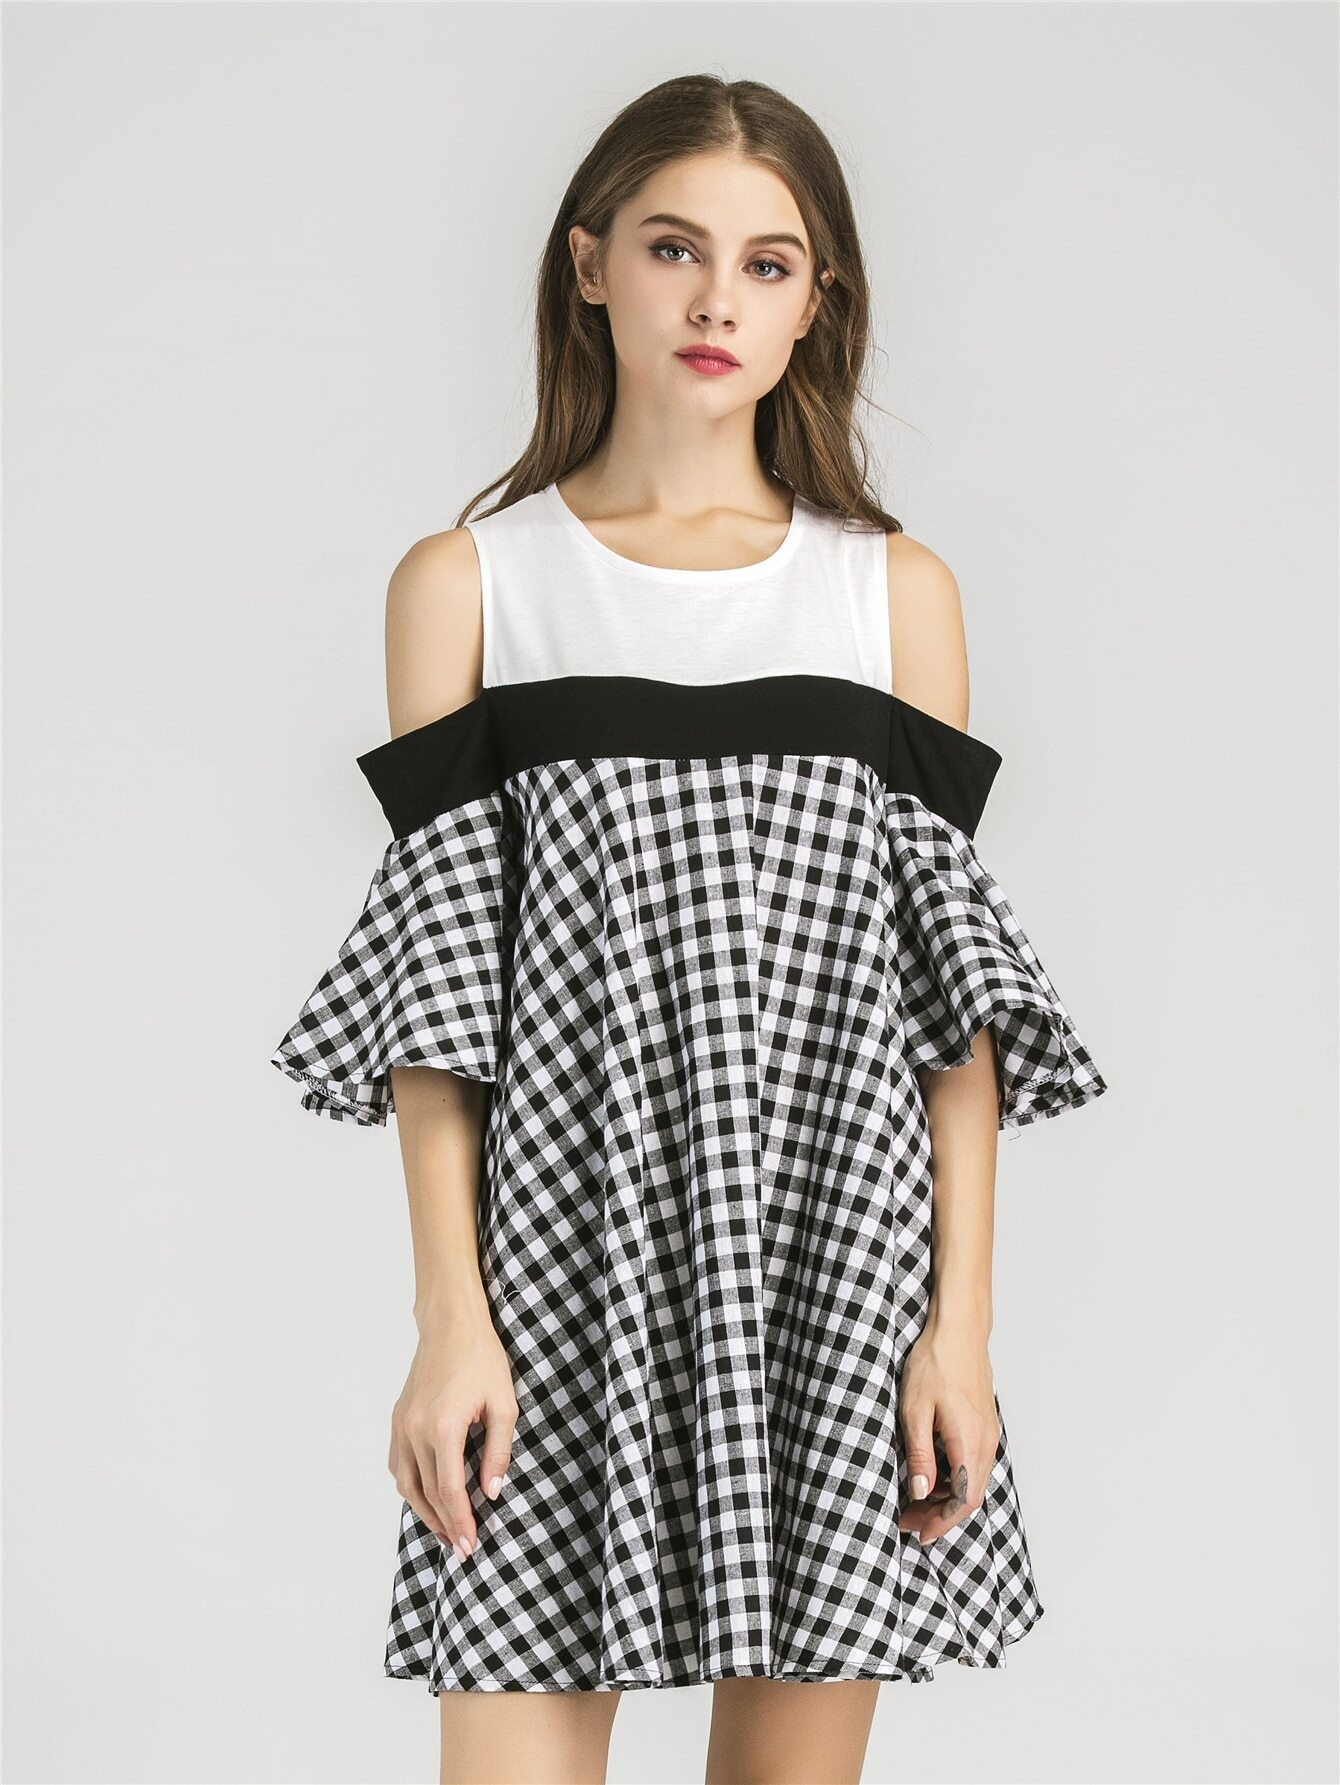 456bf667f3 Open Shoulder Contrast Gingham Bell Sleeve Dress EmmaCloth ...